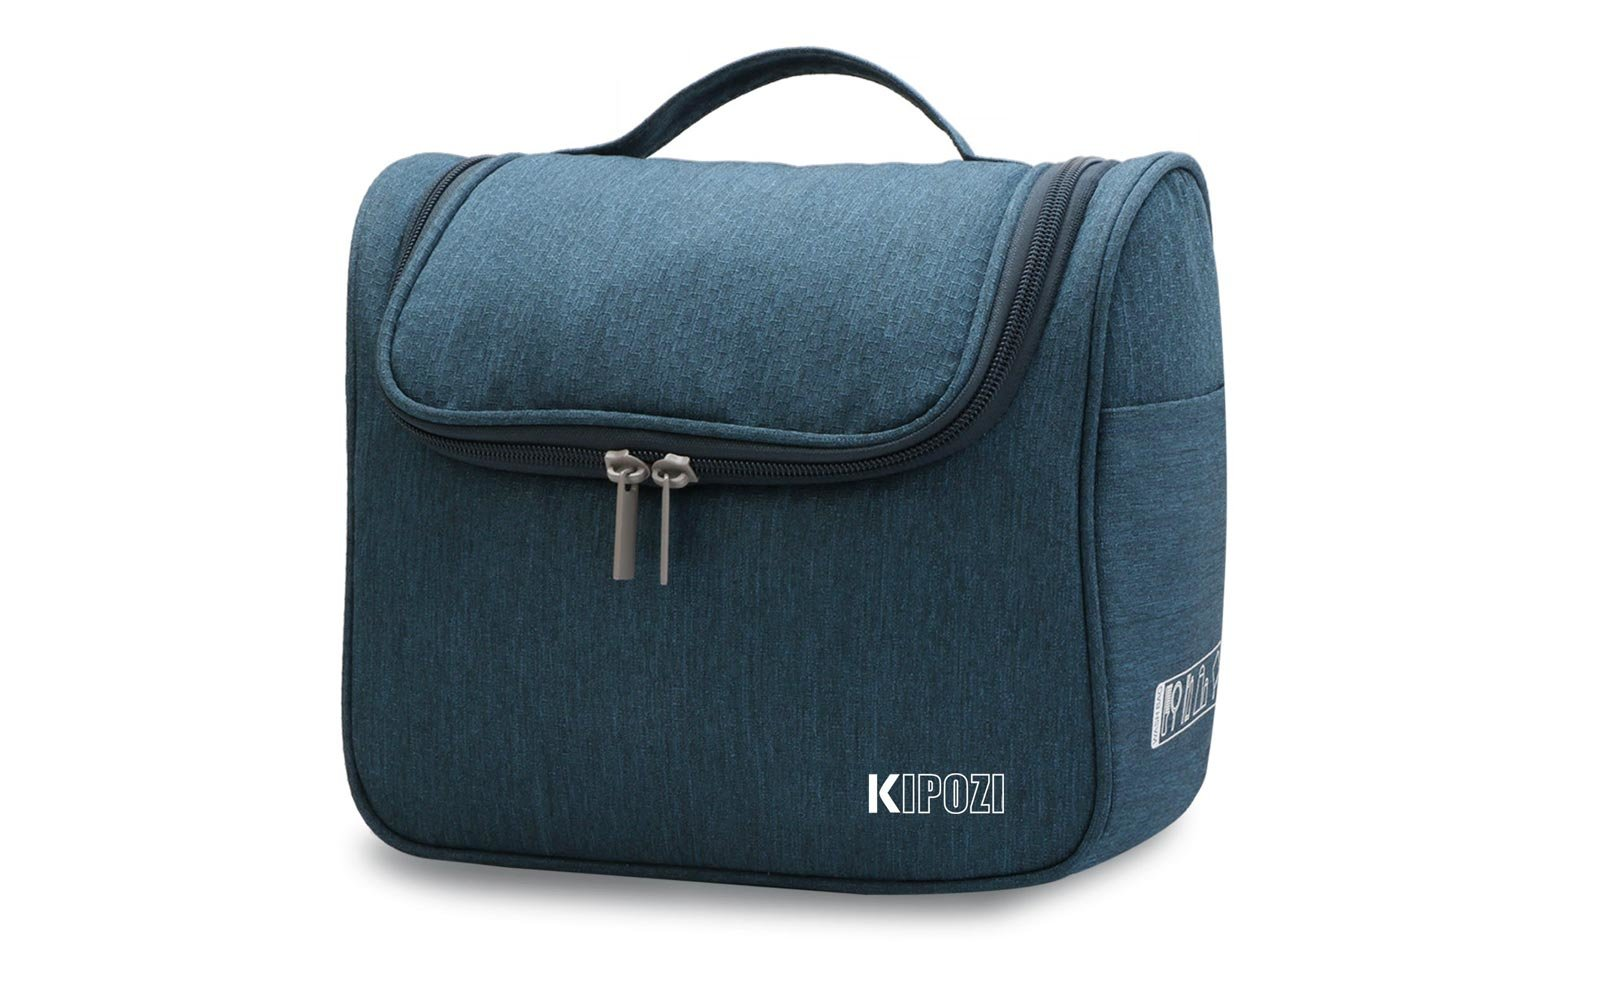 Week Kipozi Hanging Travel Toiletry Bag